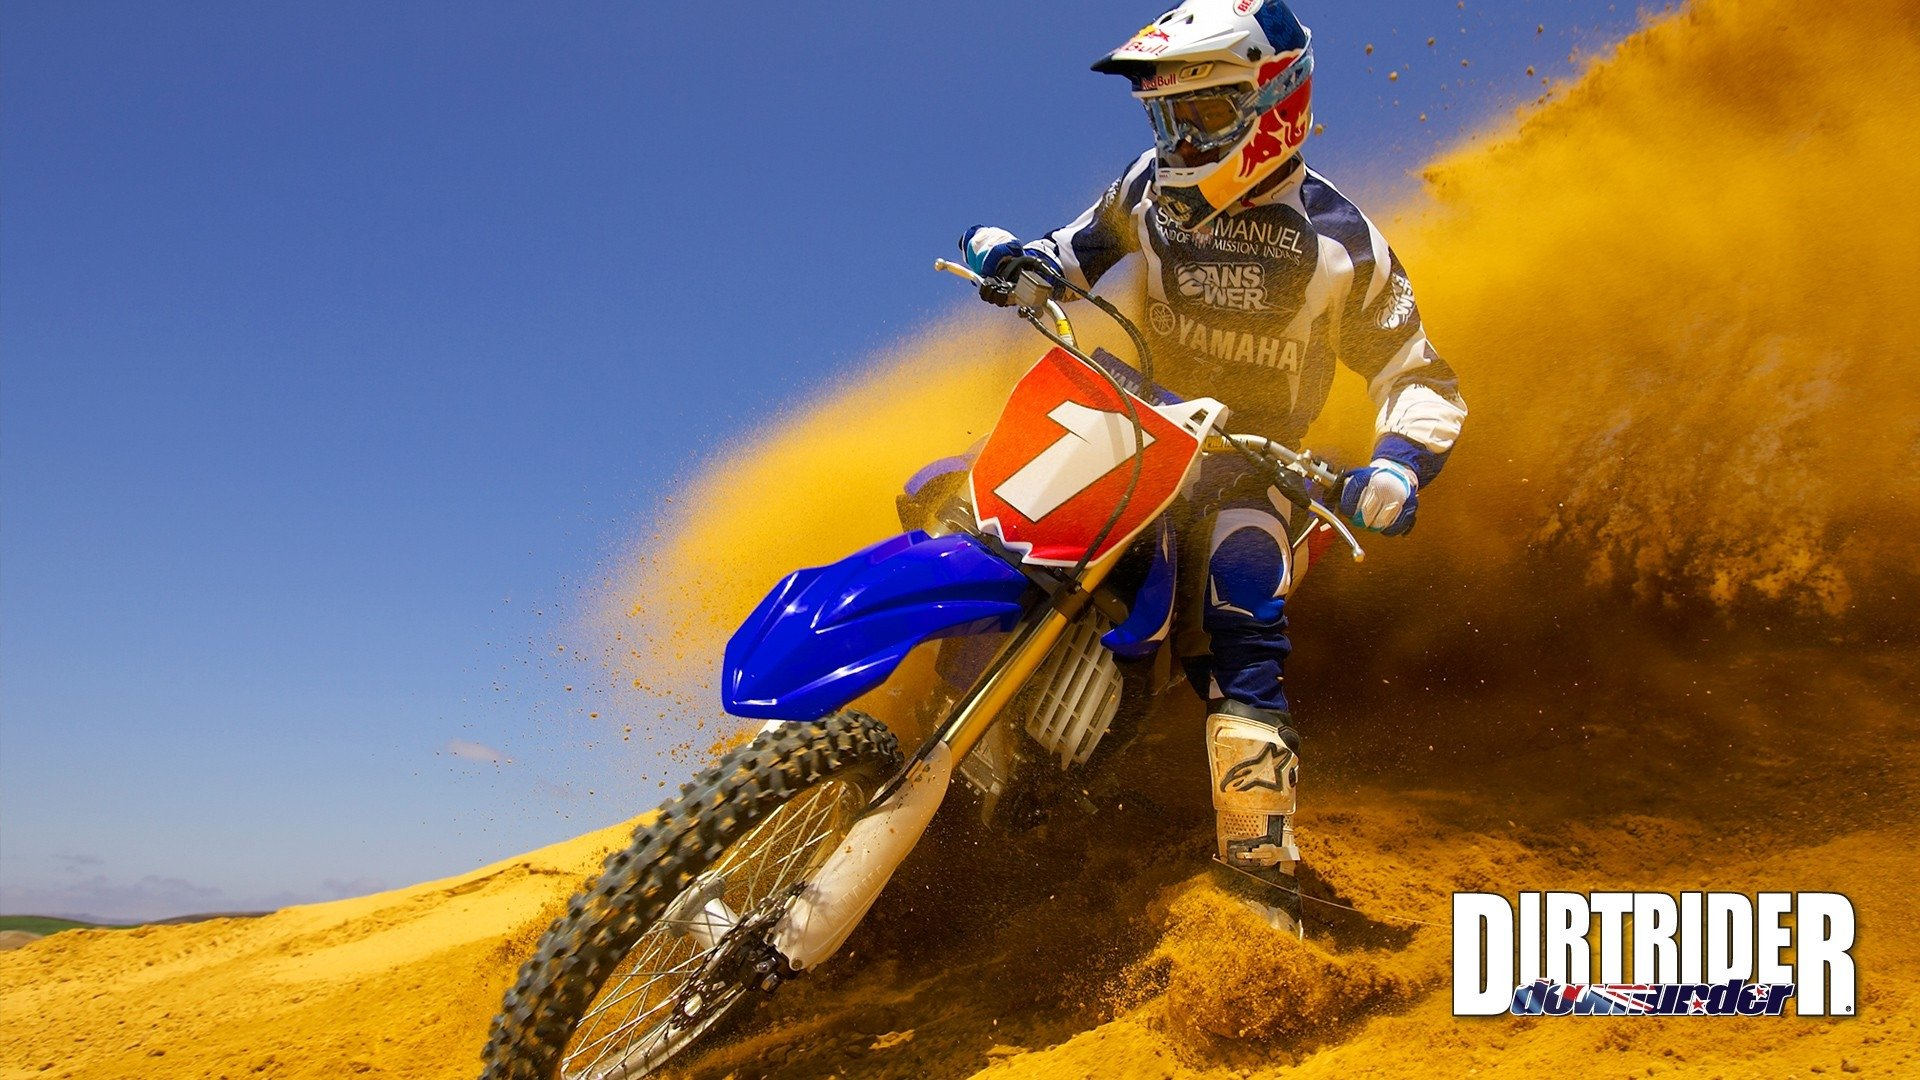 Motocross HD Wallpaper   Background Image   1920x1080   ID:304791 - Wallpaper Abyss